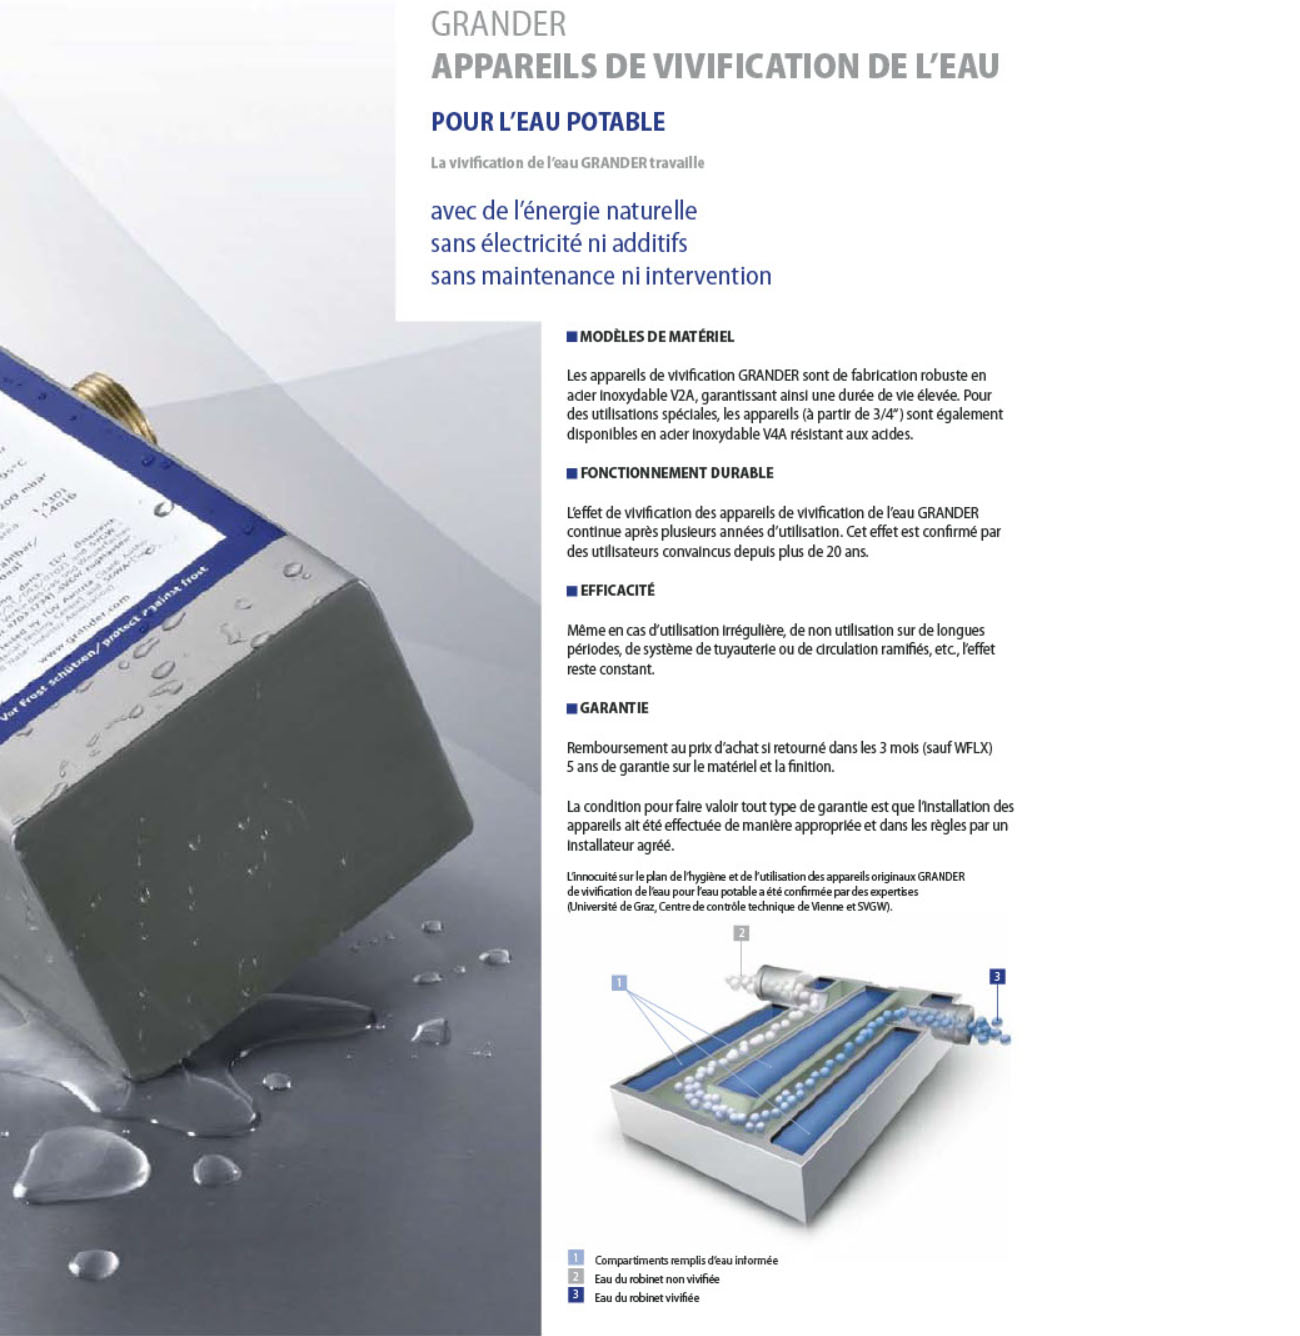 Vivificateur d'eau potable W300 GRANDER